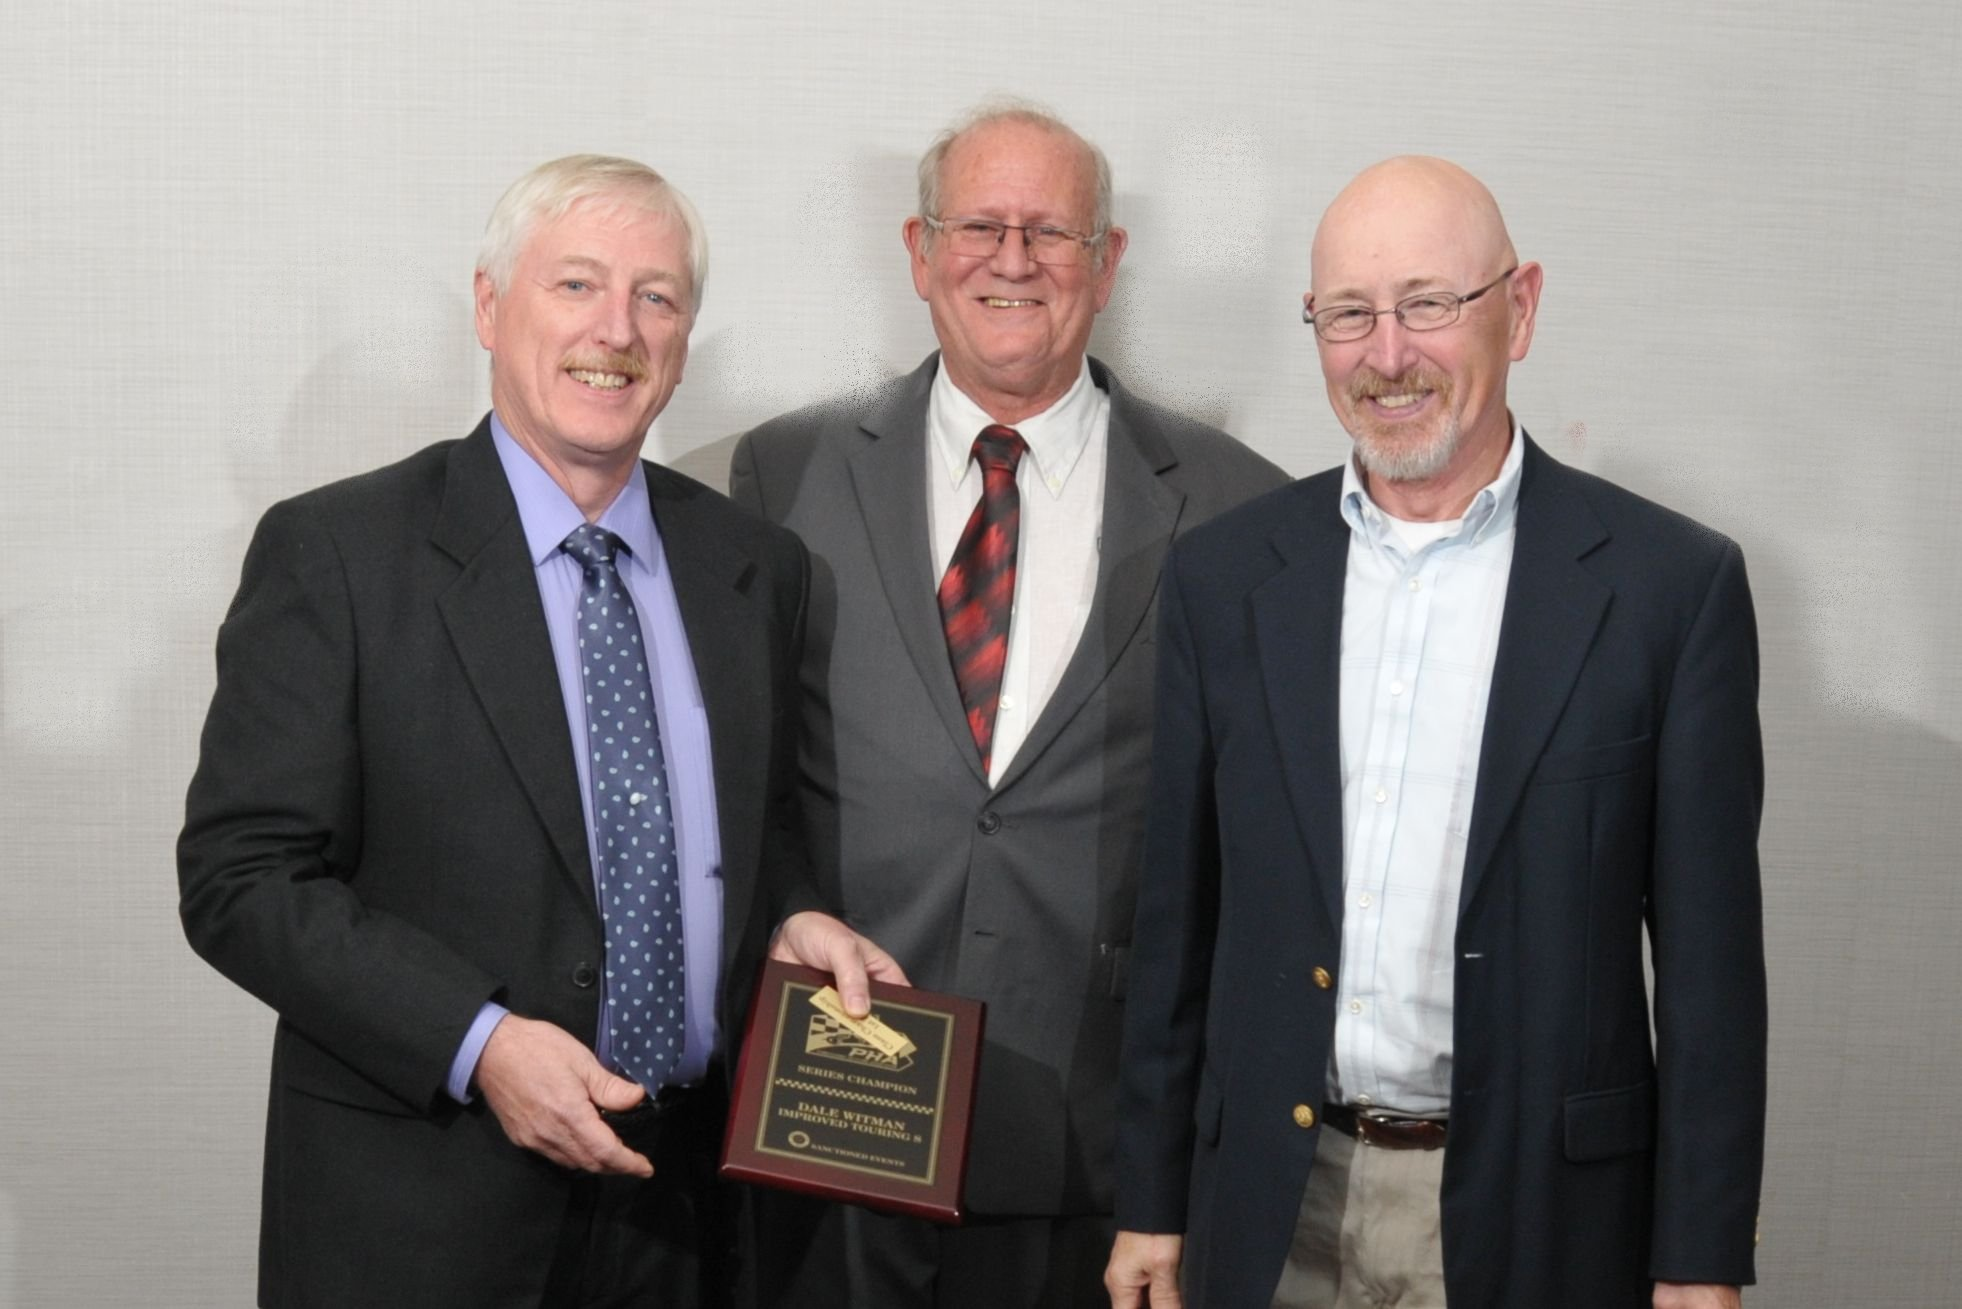 ITS - Dale Witman with PHA President Tom Knorr and Runner-up George Witman